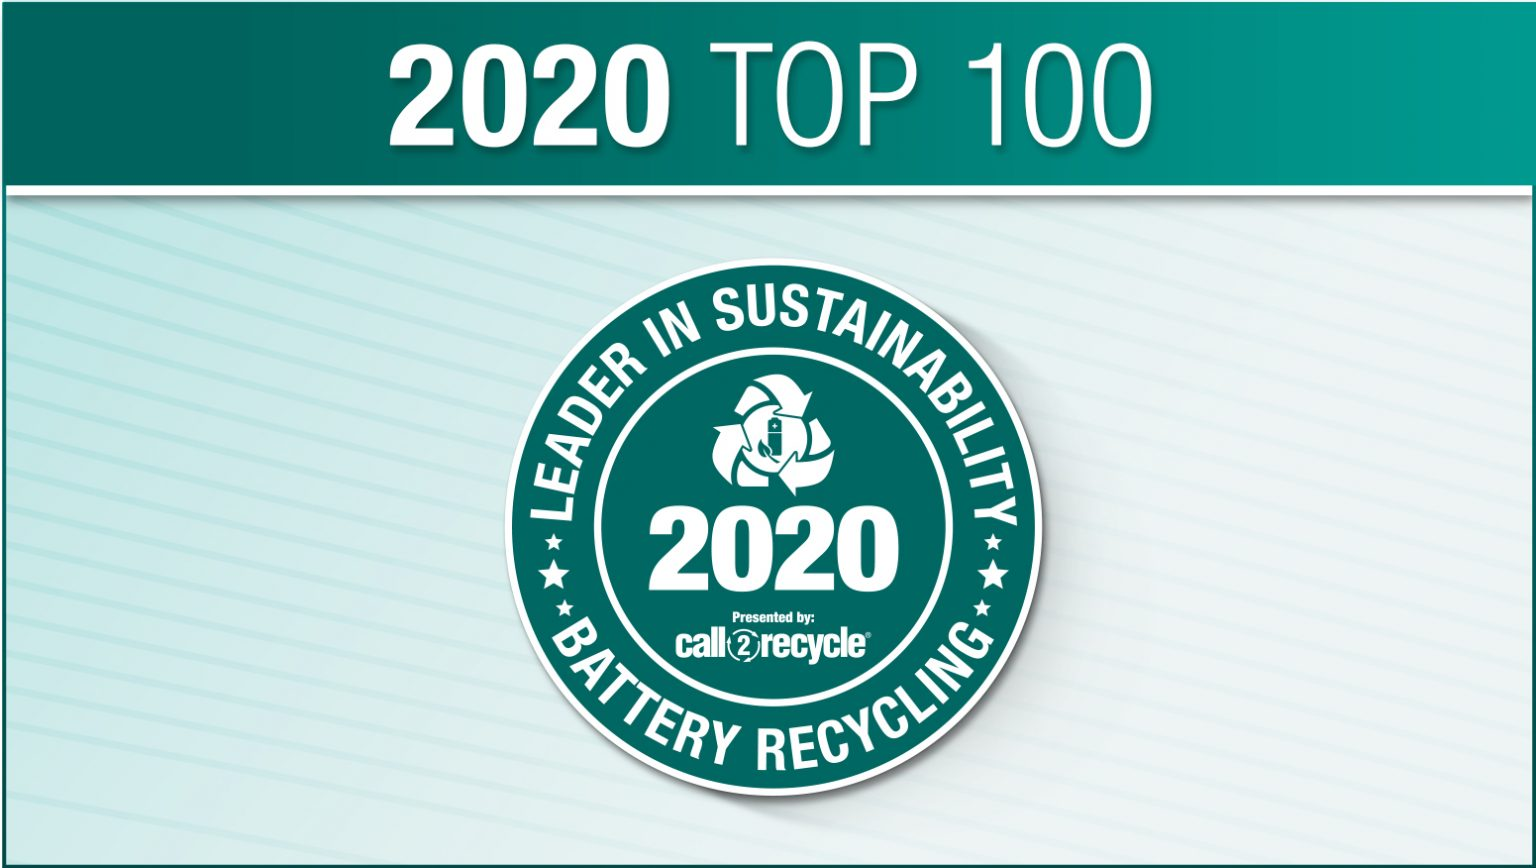 Leader in Sustainability Certificate